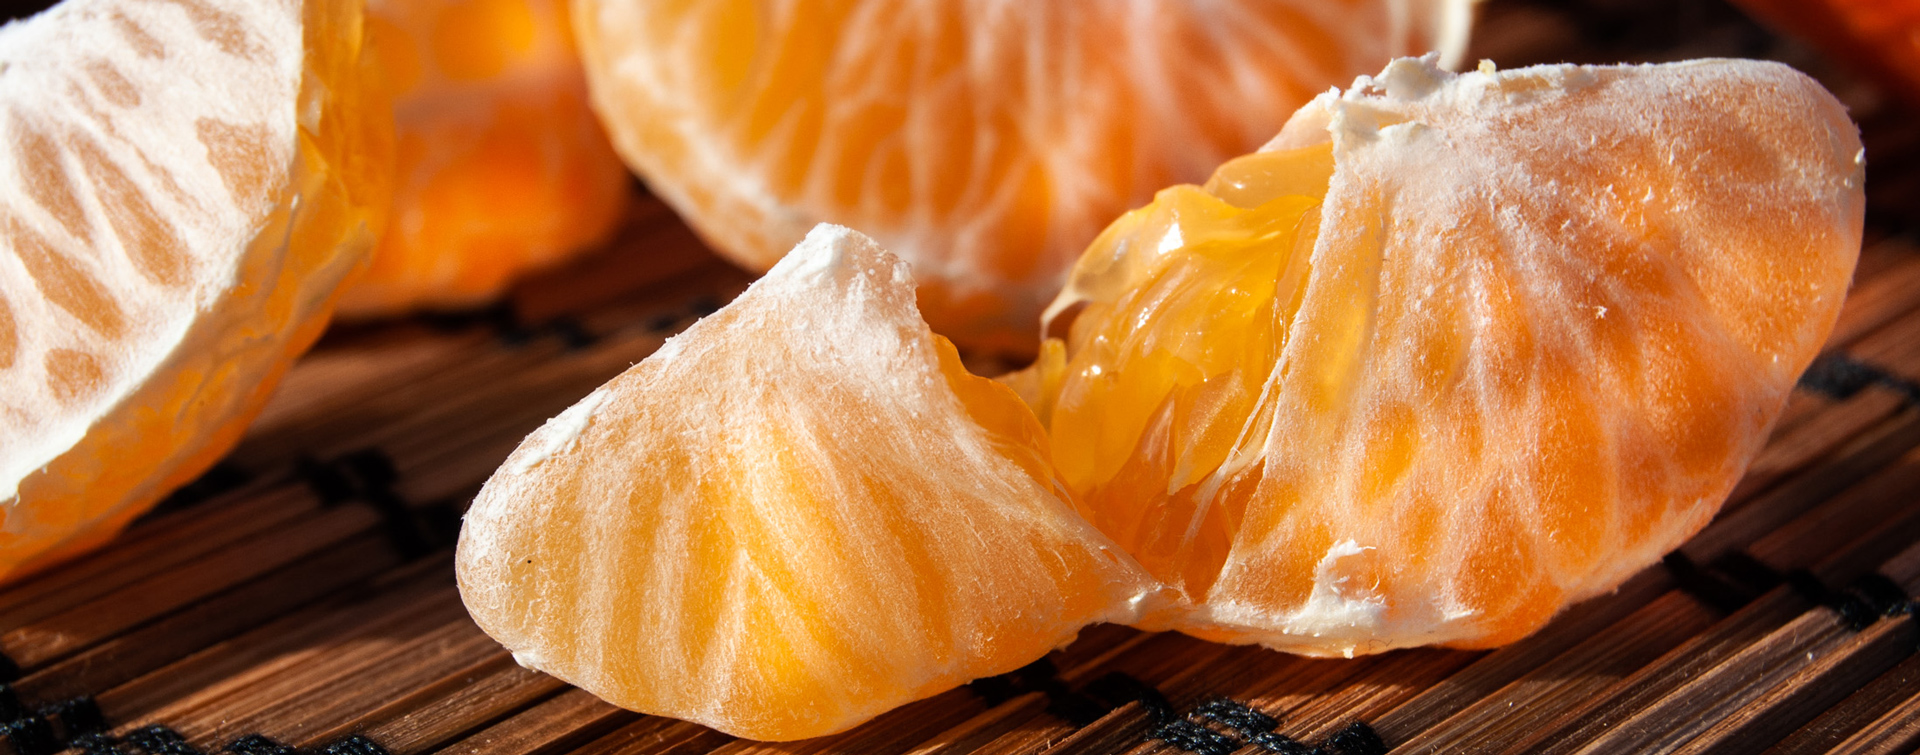 Mandarin and Clementine, natural cloves